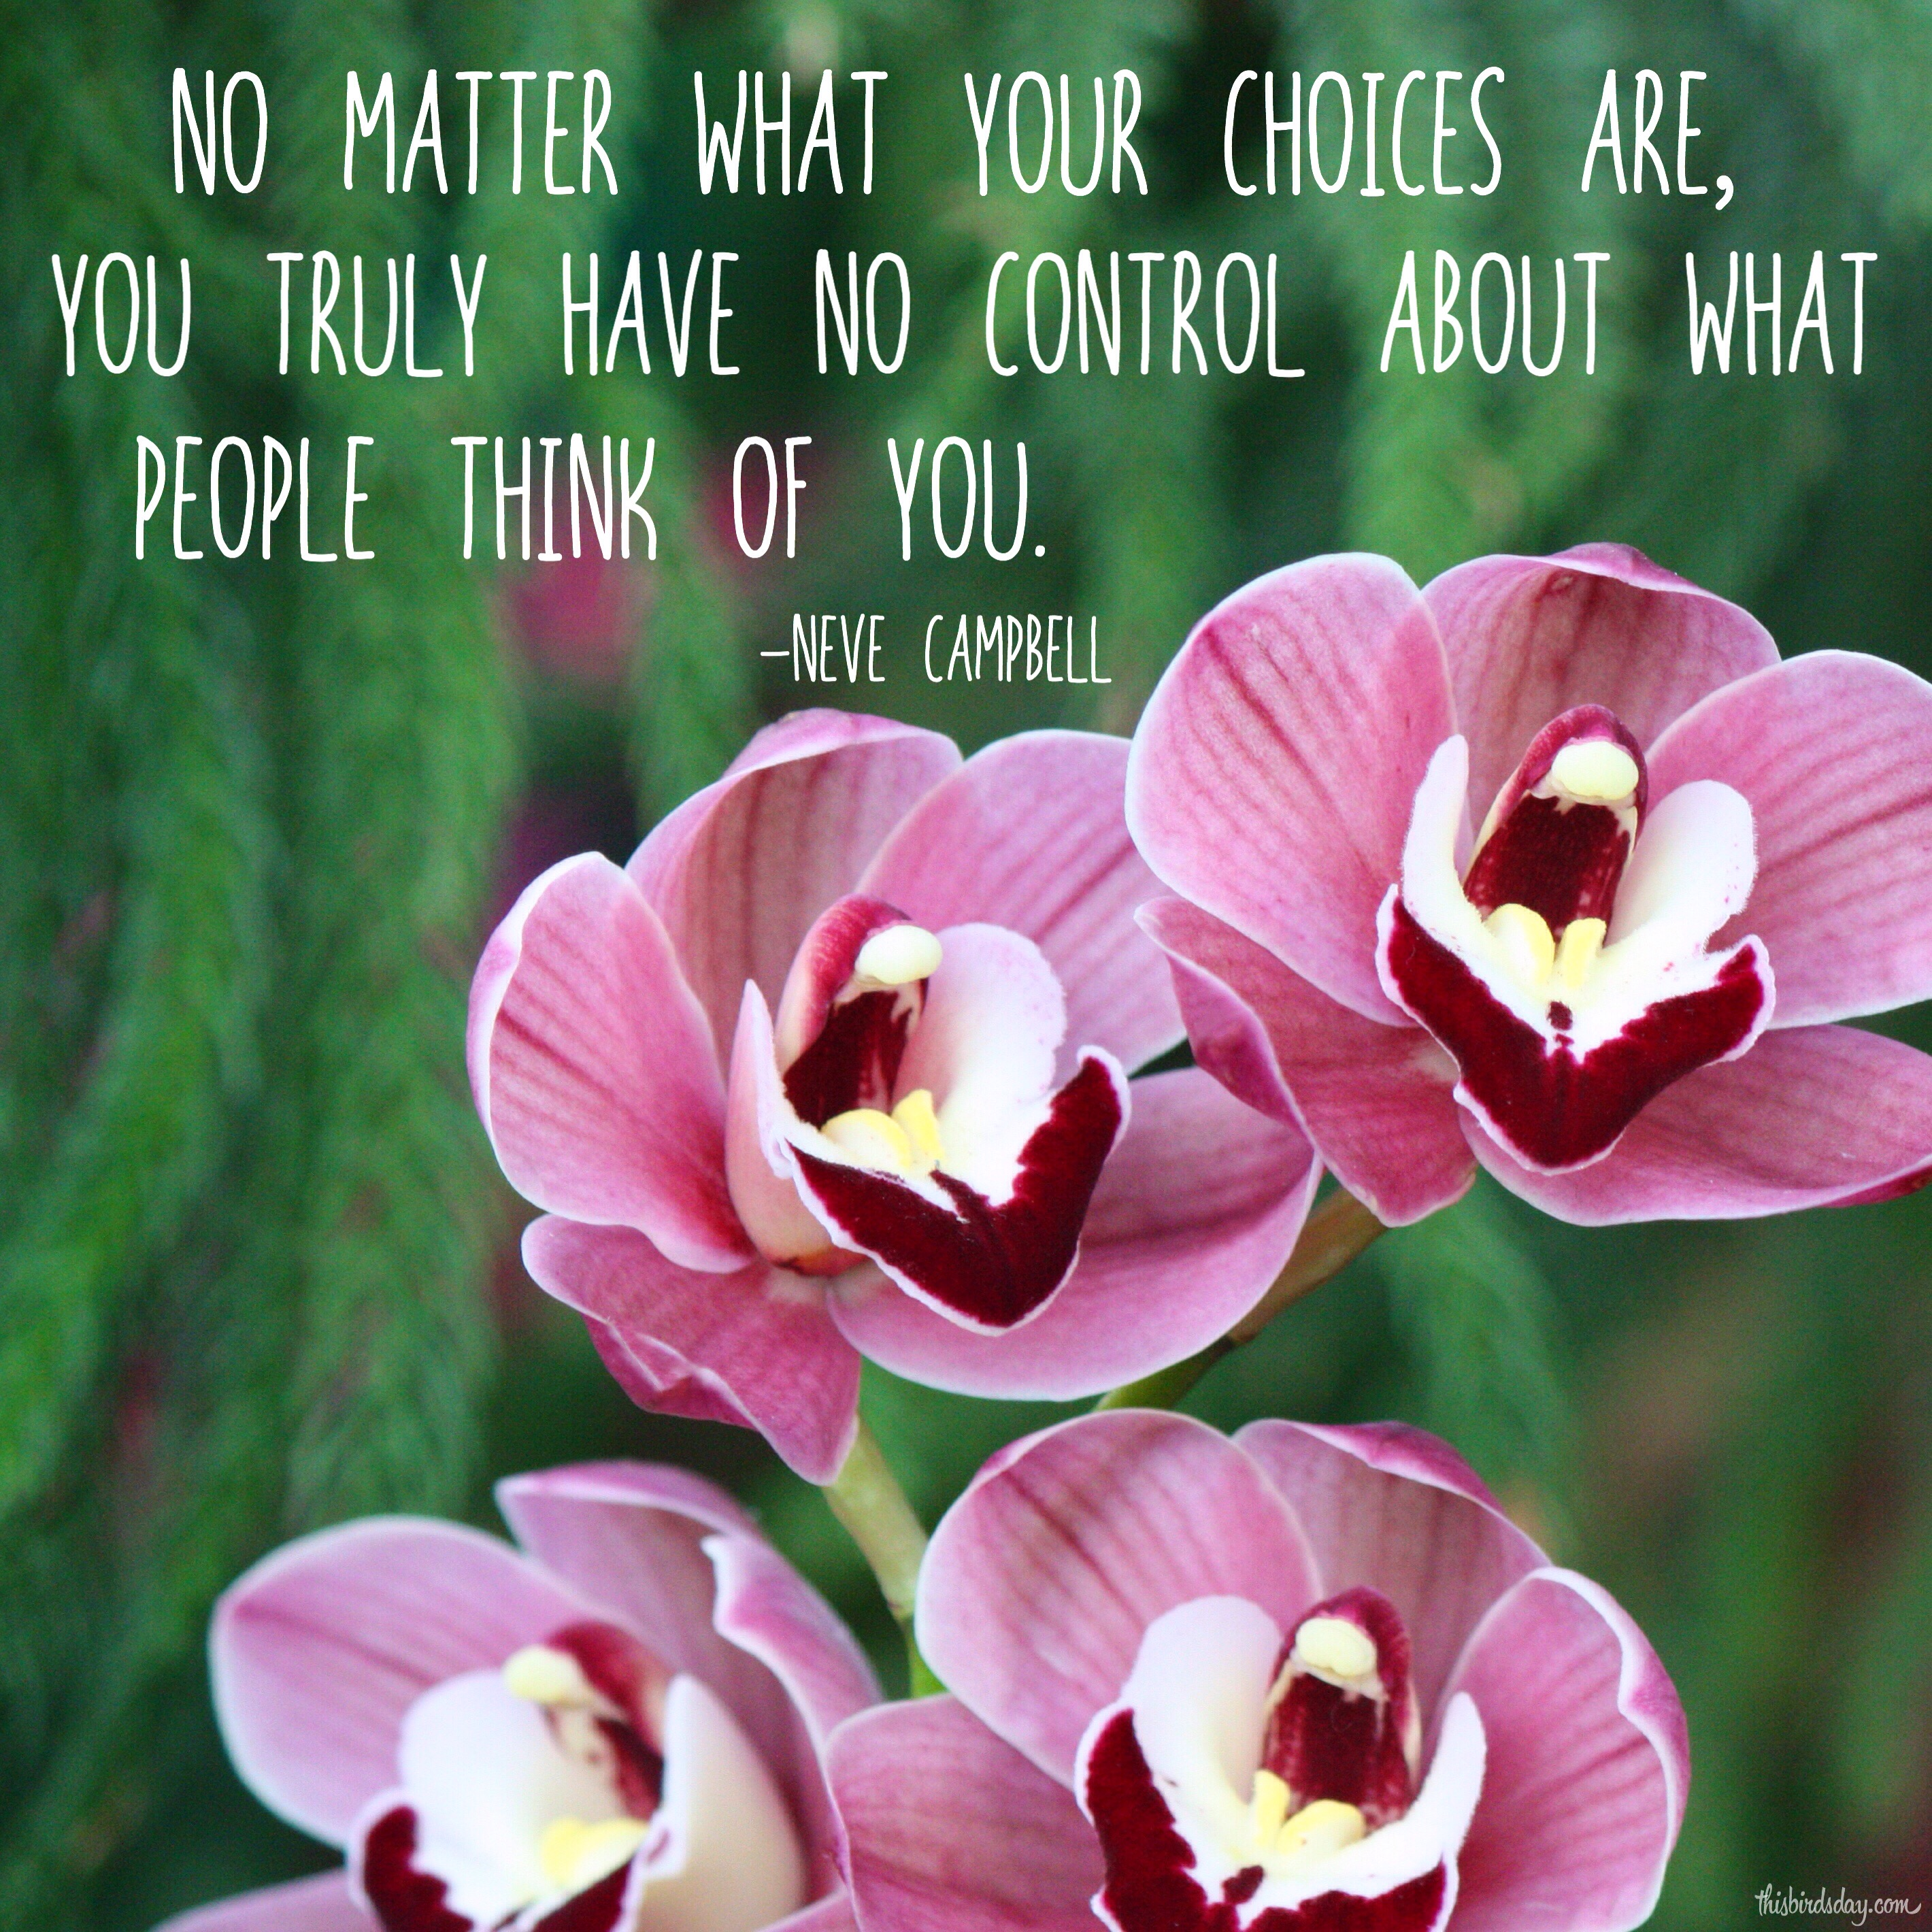 """No matter what your choices are, you truly have no control aboute what people think of you."" Neve Campbell Photo copyright Sheri Landry"